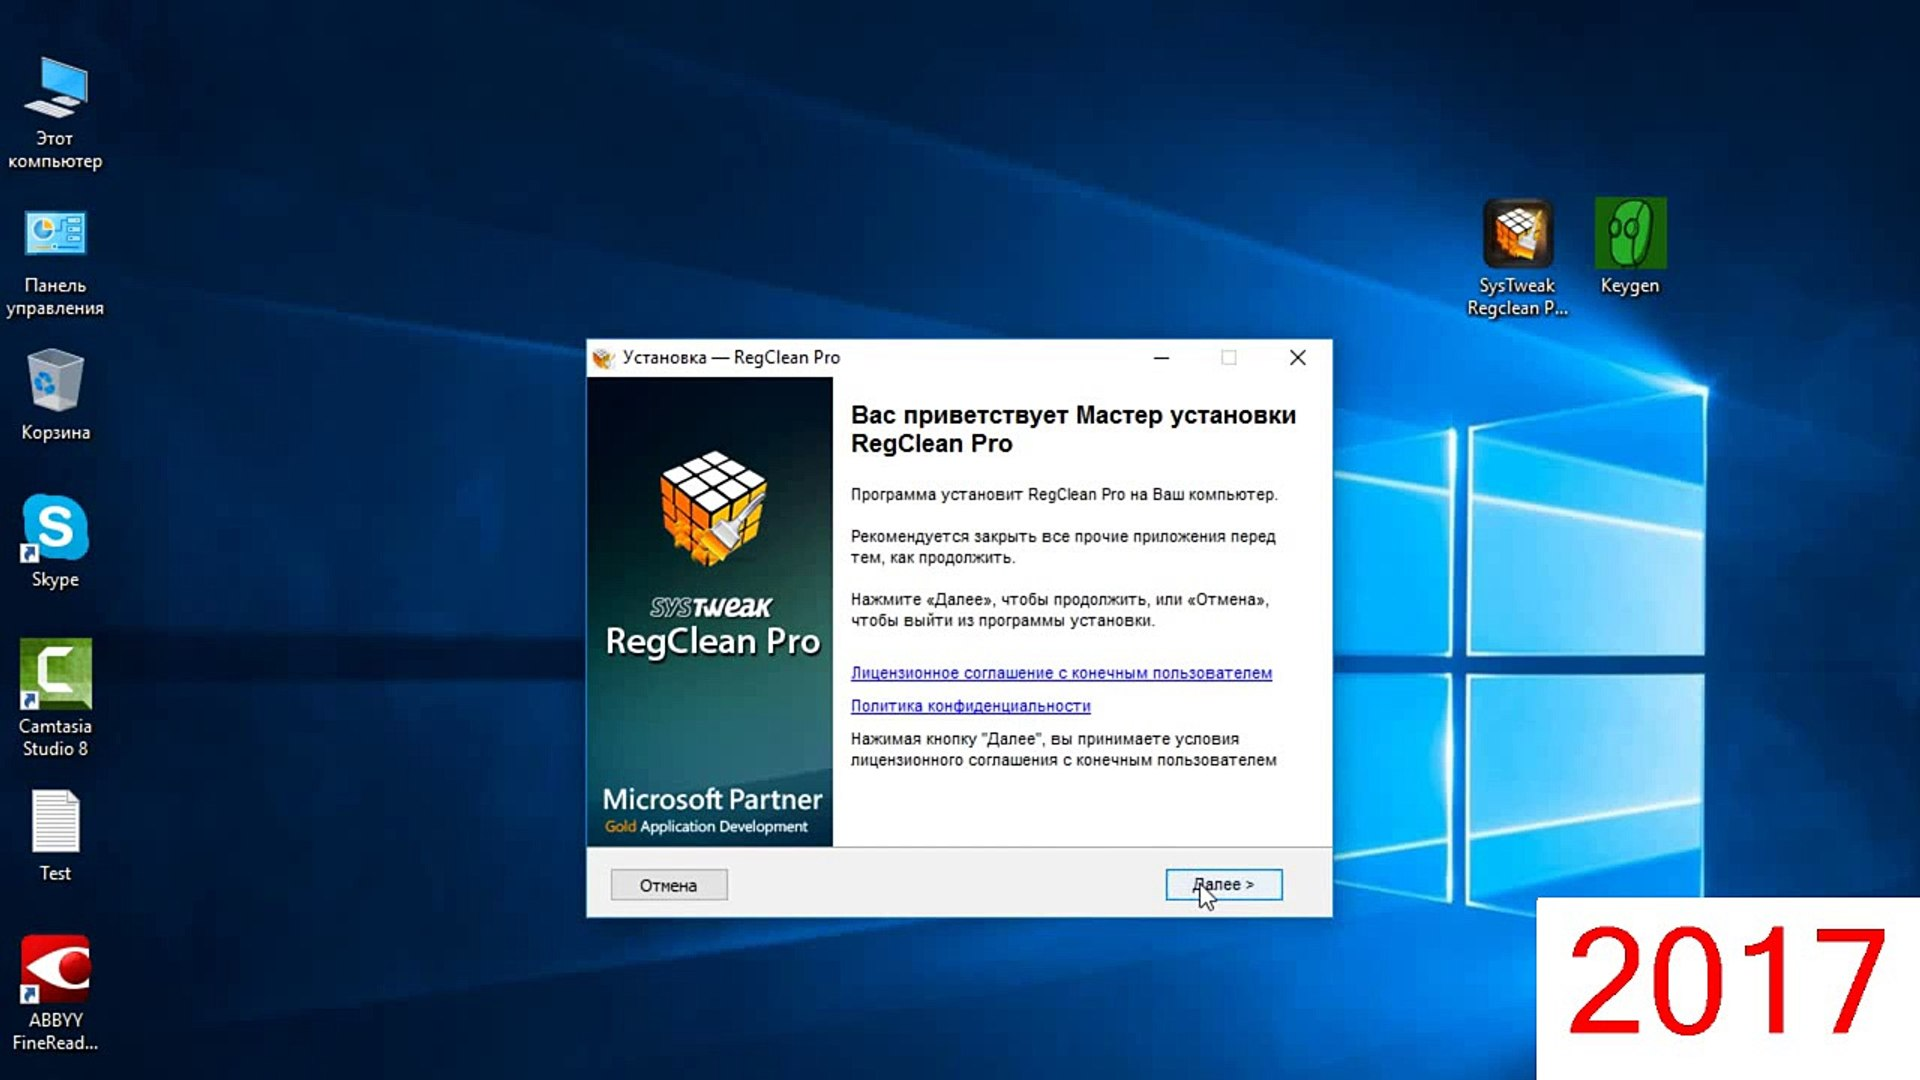 regclean pro full version free download